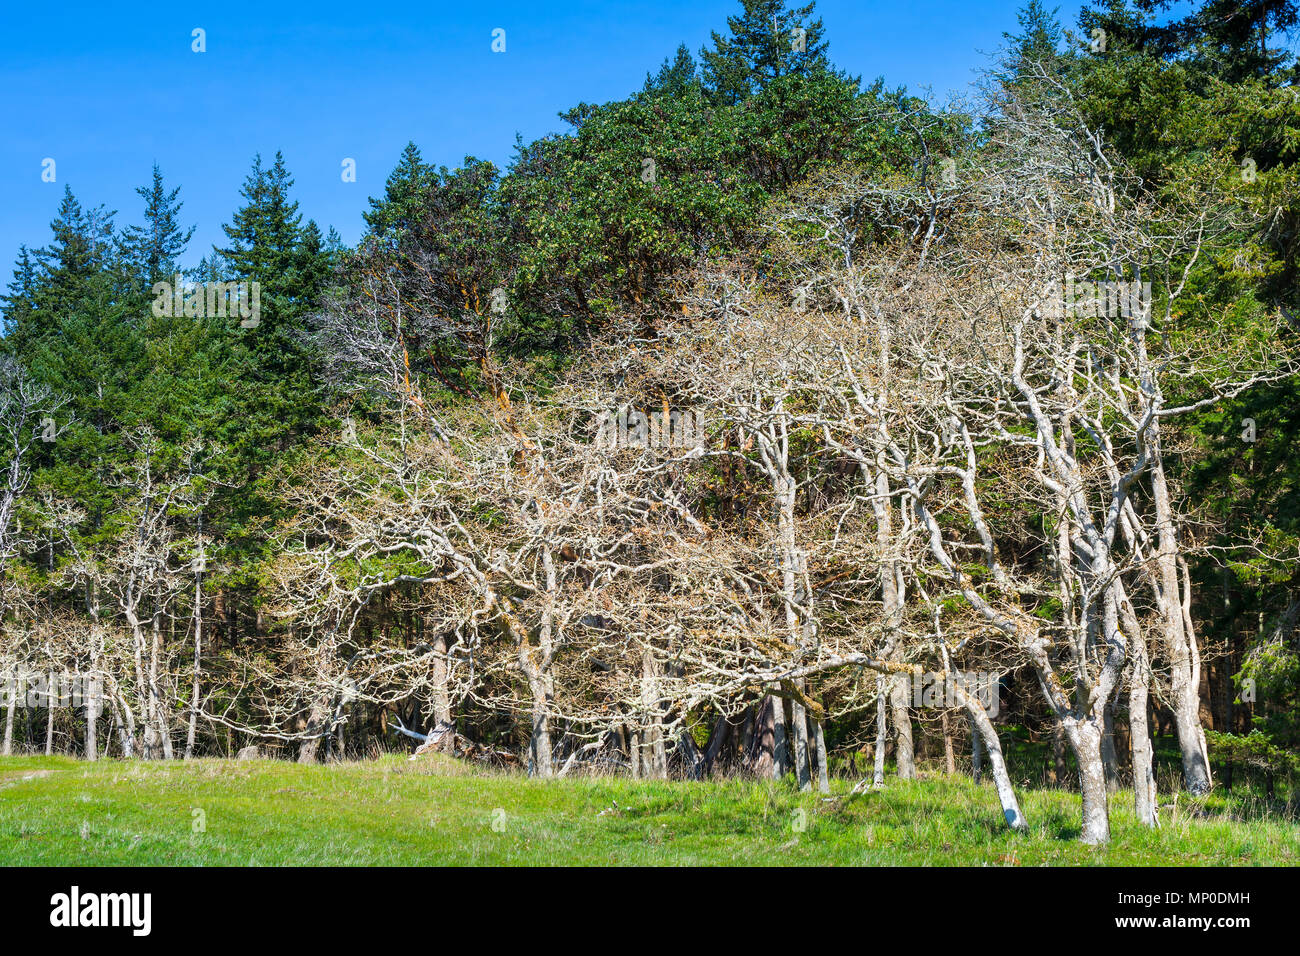 Garry Oak trees, Helliwell Provincial Park, Hornby Island, BC, Canada. - Stock Image